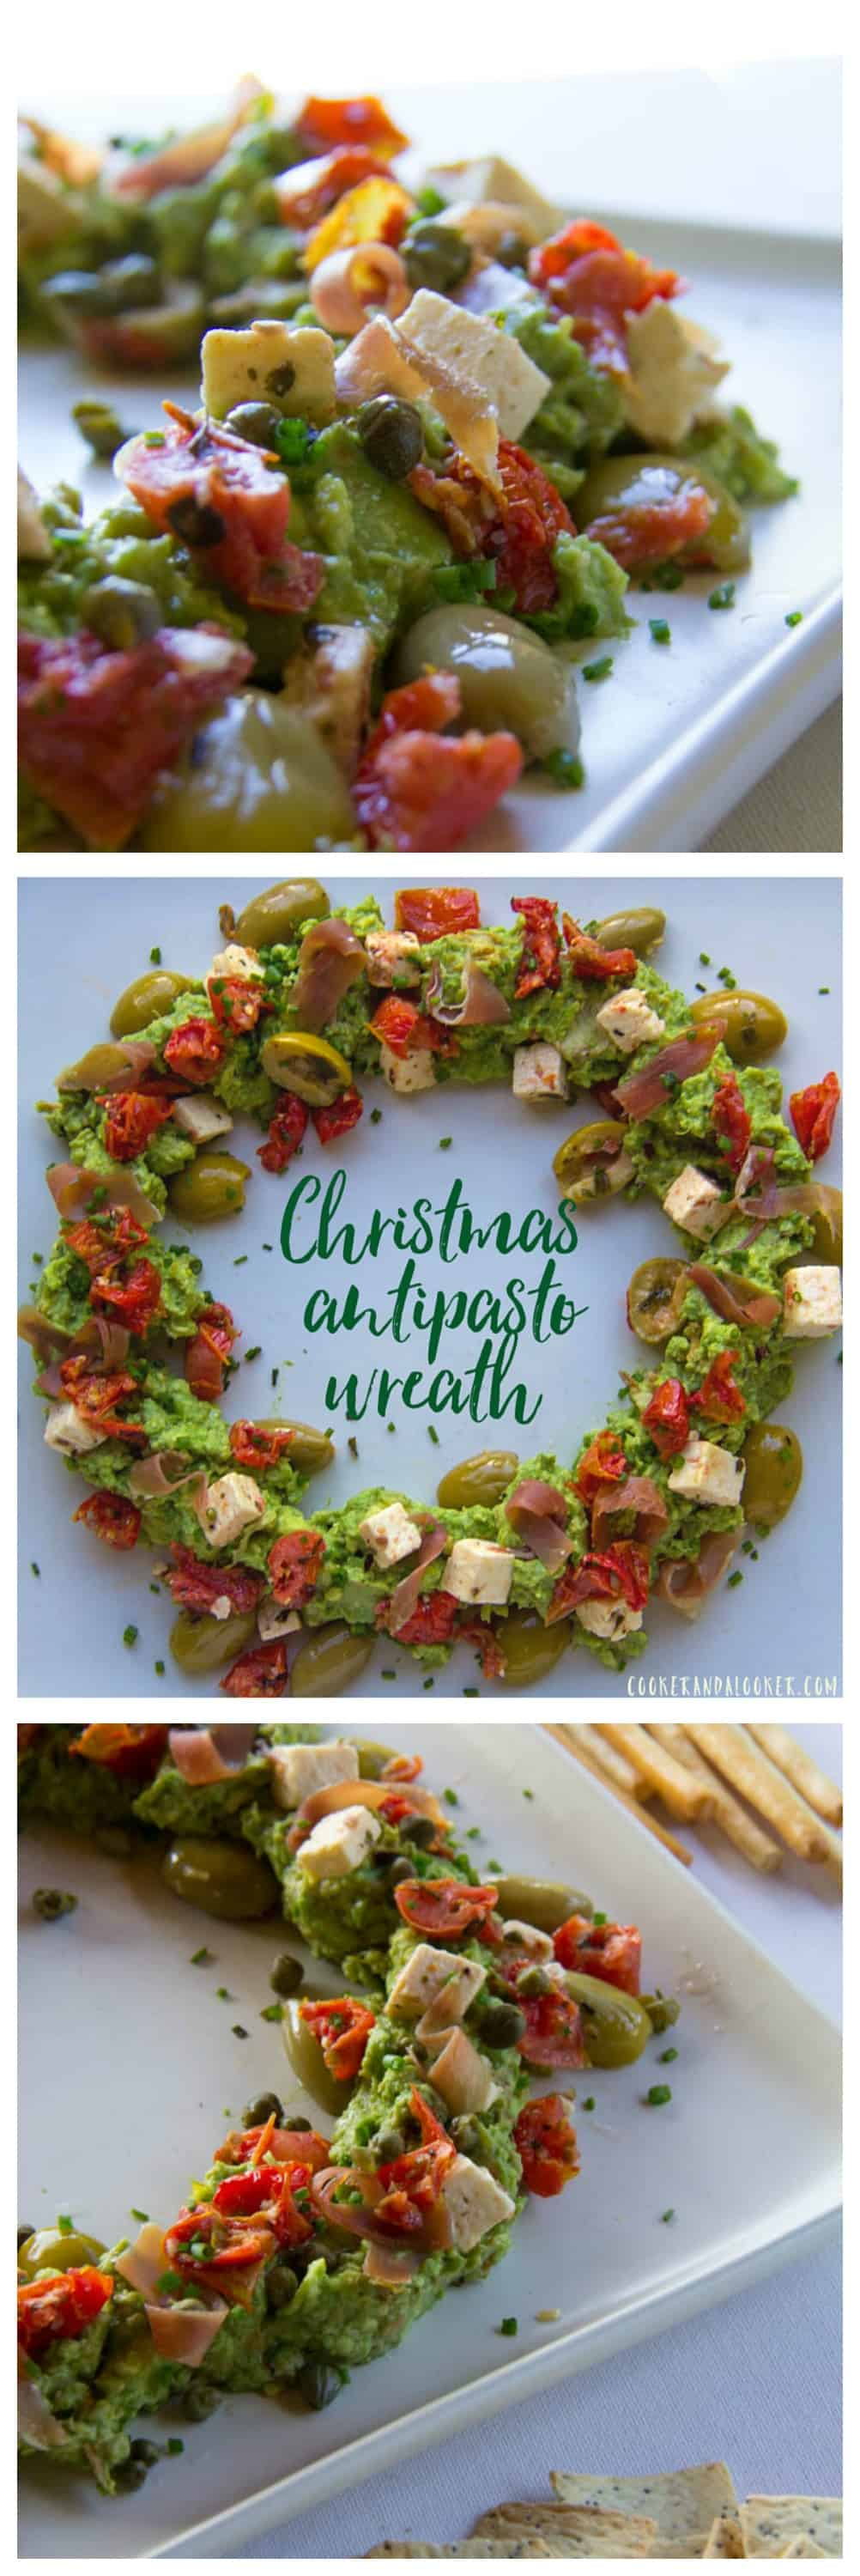 This Christmas Antipasto Wreath is just the thing to pop together should Oprah Winfrey pop in for afternoon tea. It's simple, stylish and read in just ten minutes!